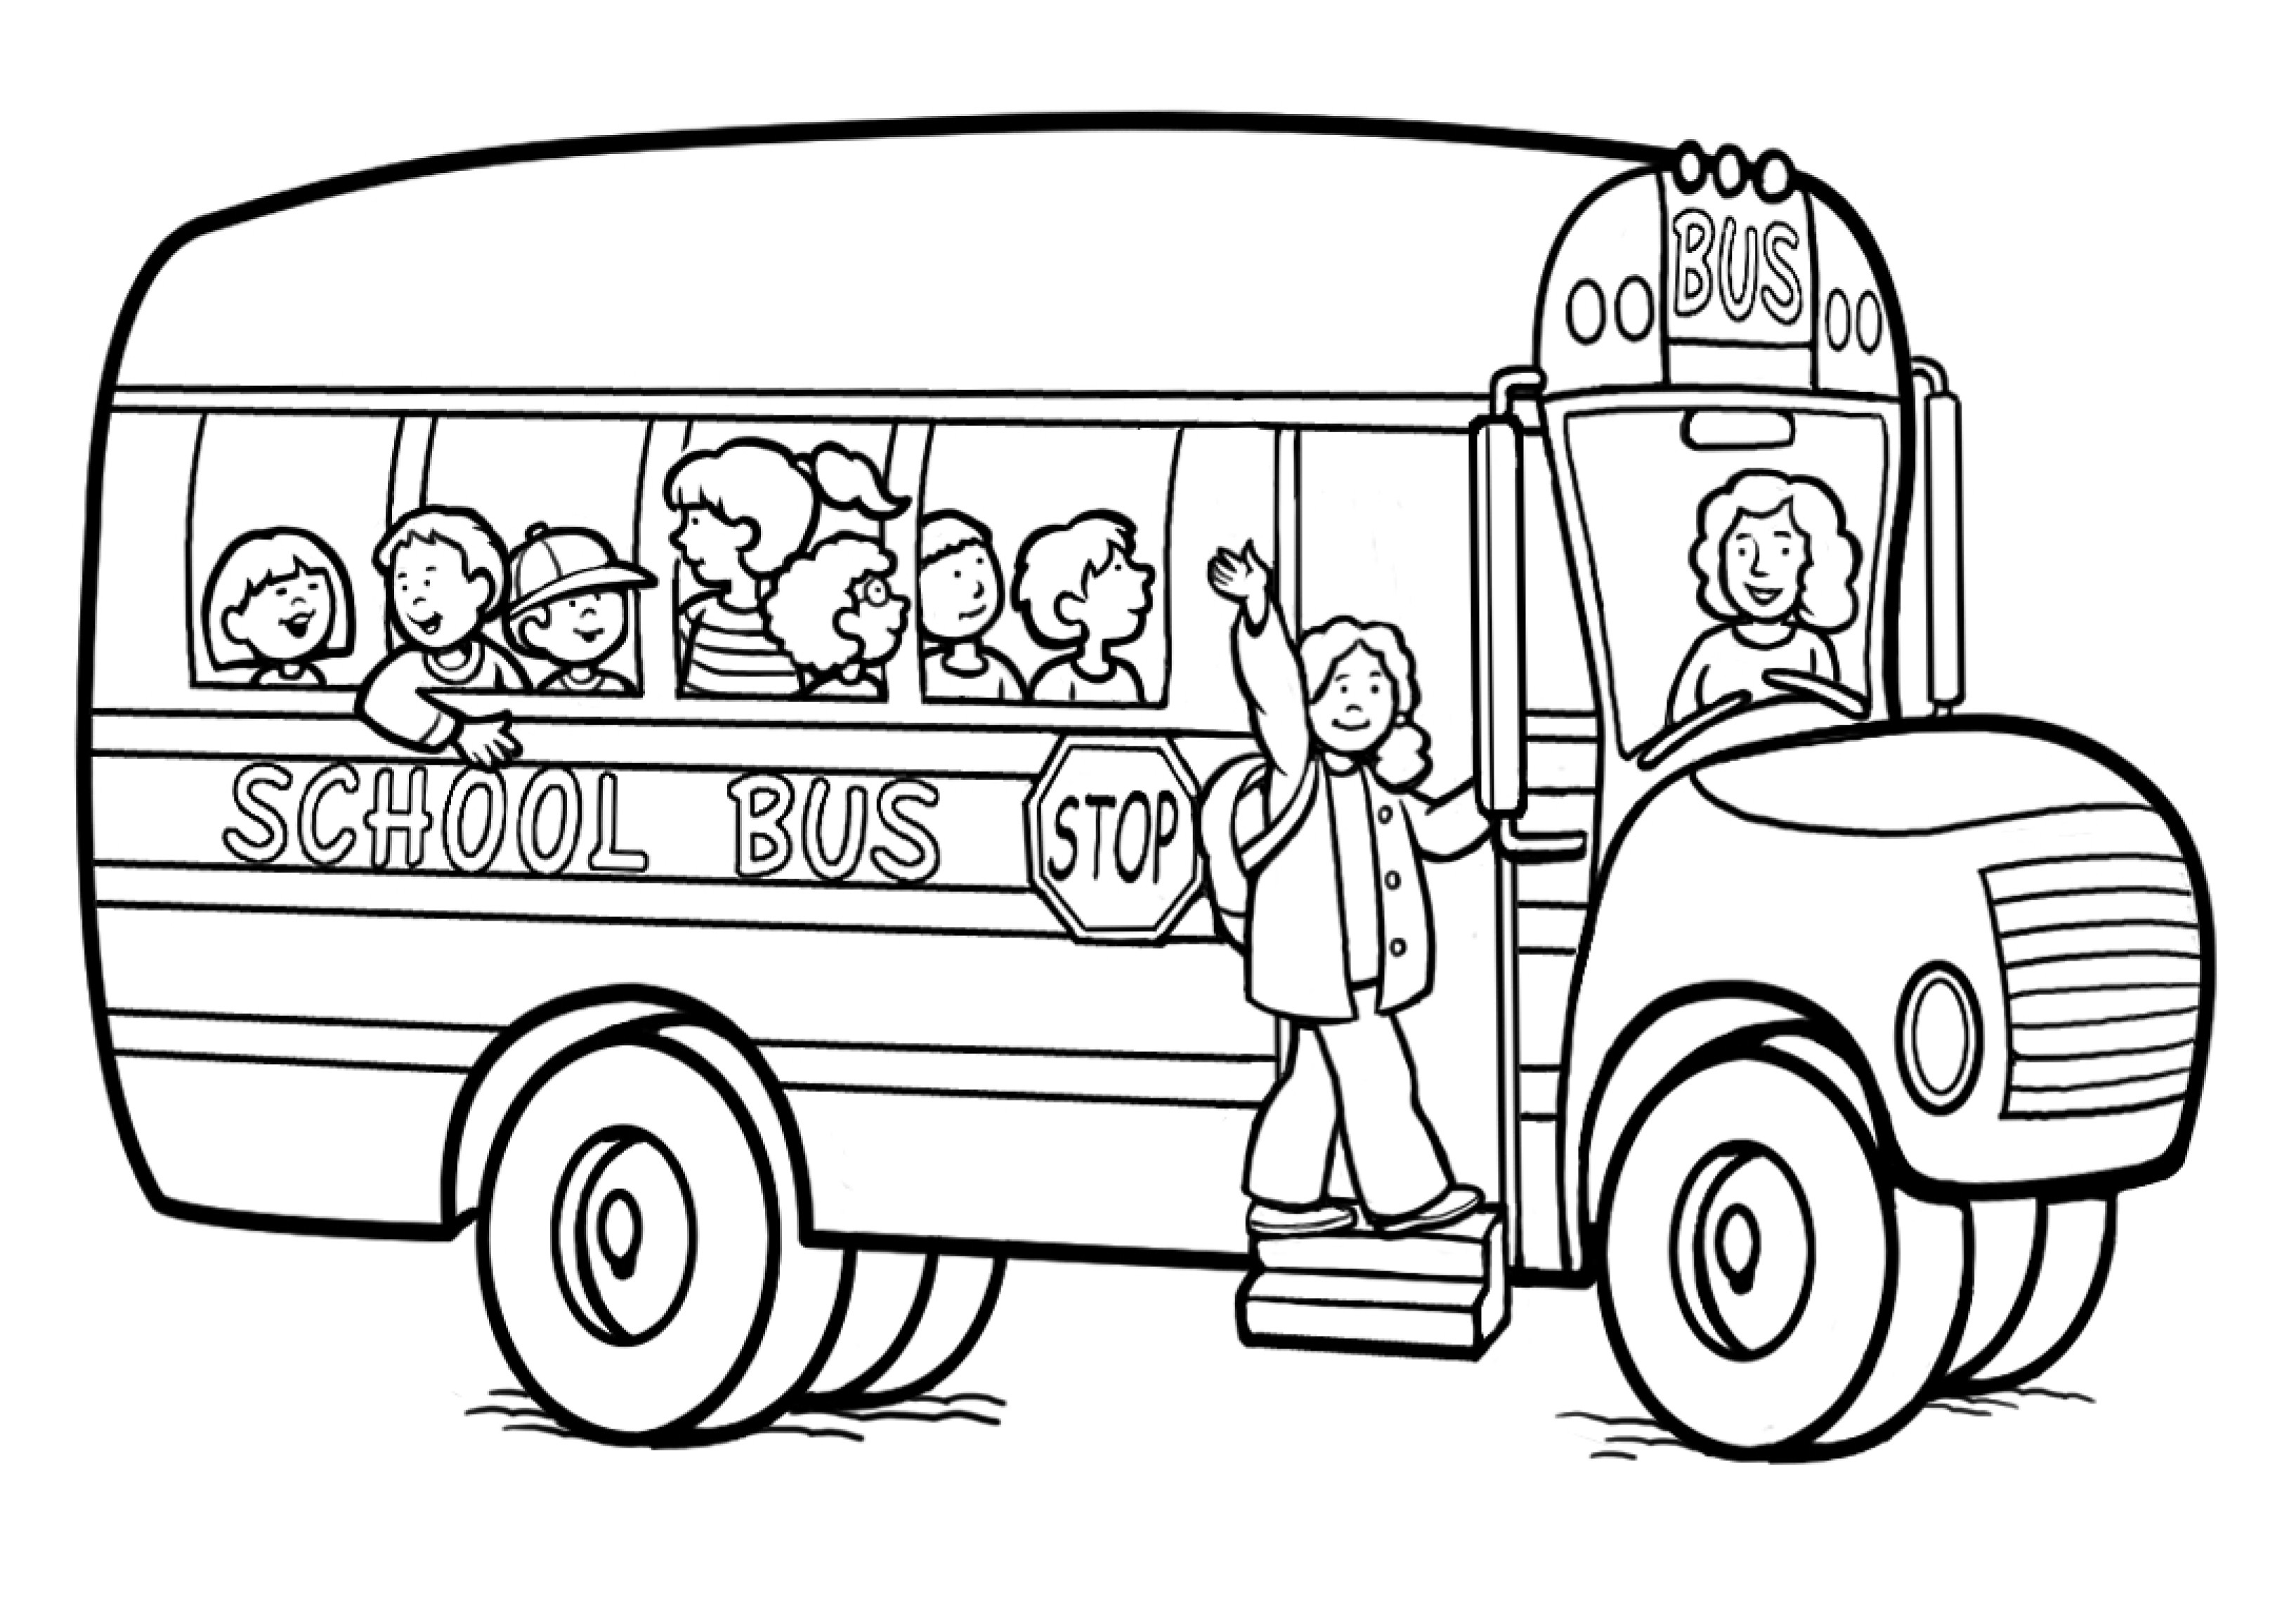 bus coloring sheet bus free colouring pages sheet bus coloring